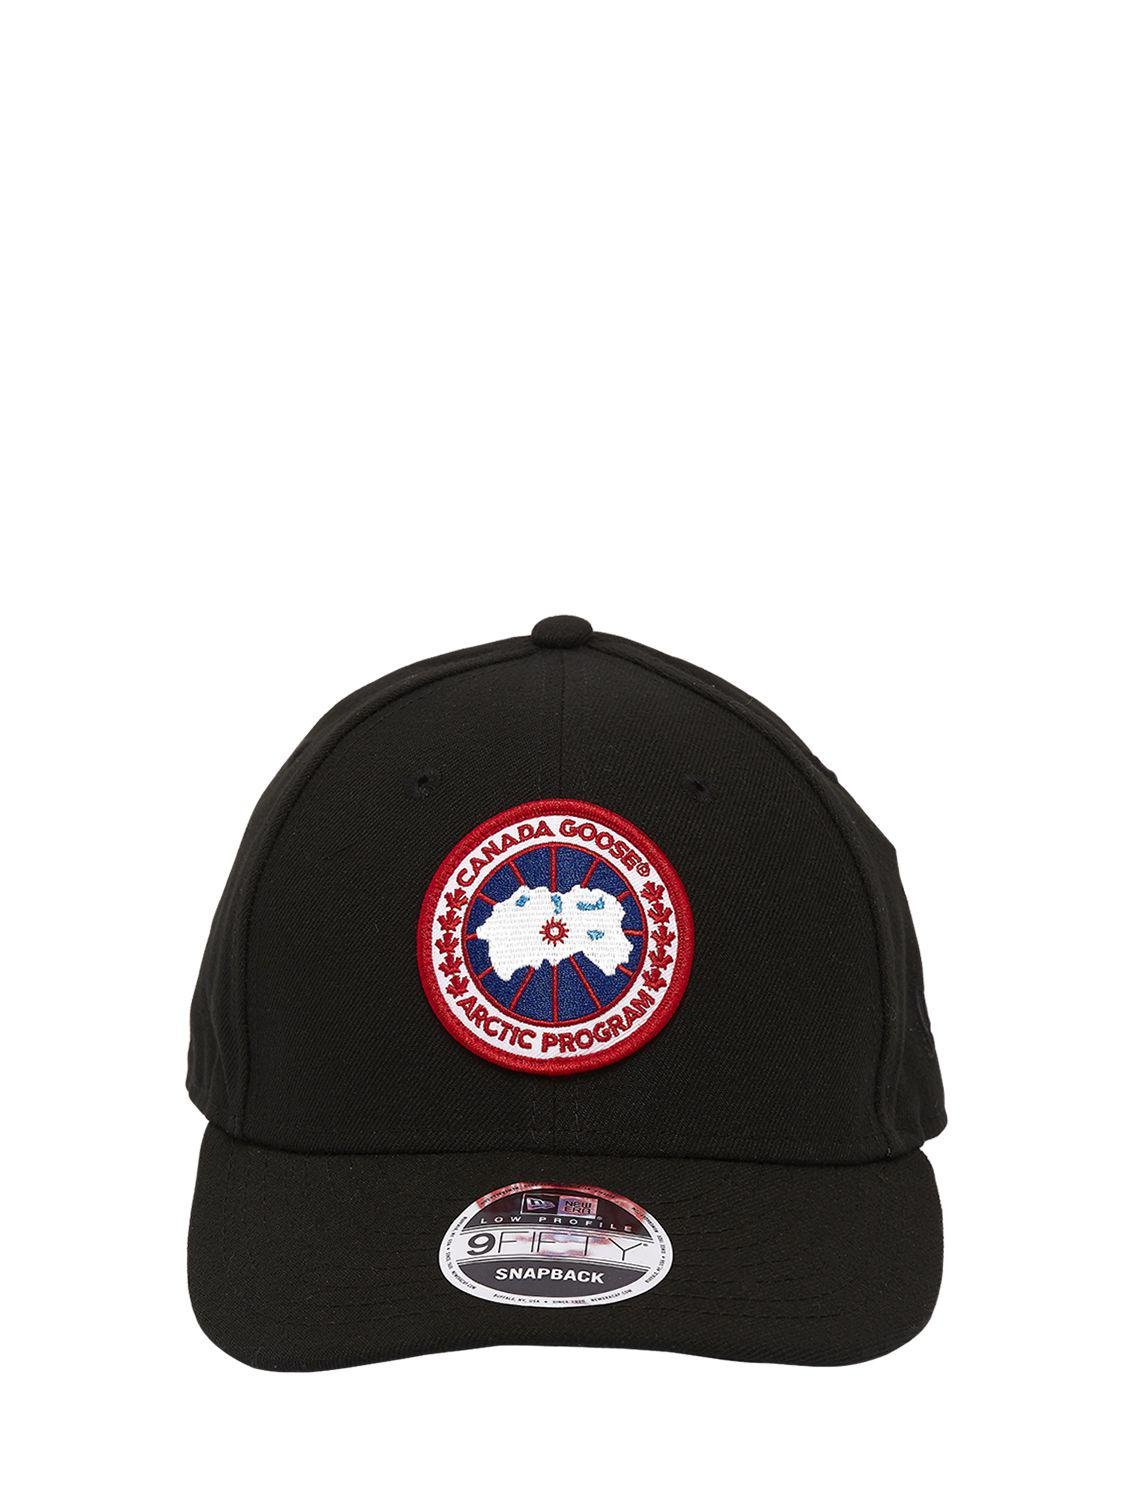 Canada Goose Core Cap New Era 9fifty Hat in Black for Men - Lyst b6cf3c3caf9a